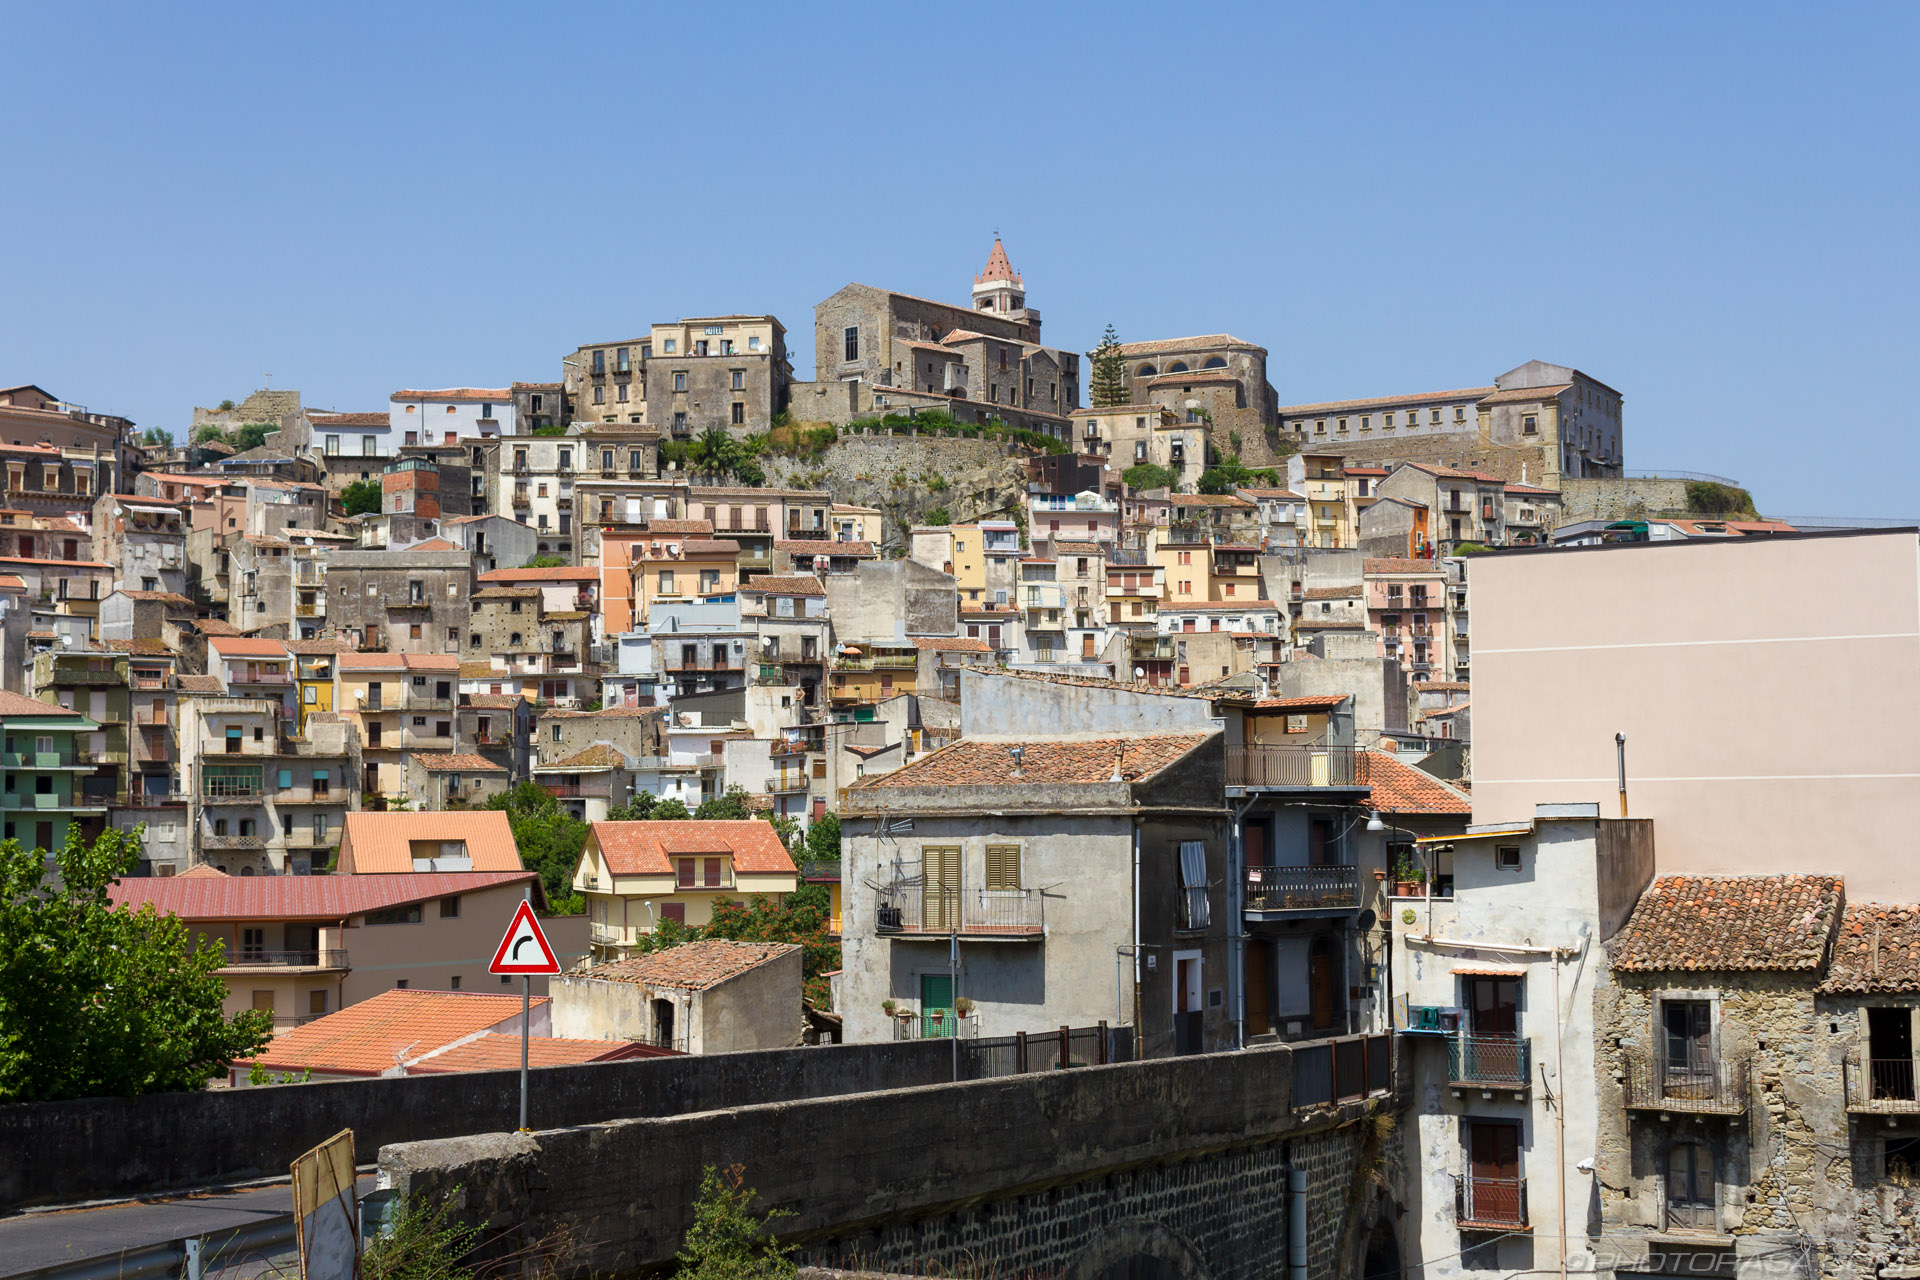 http://photorasa.com/sicilian-village-on-a-hill/